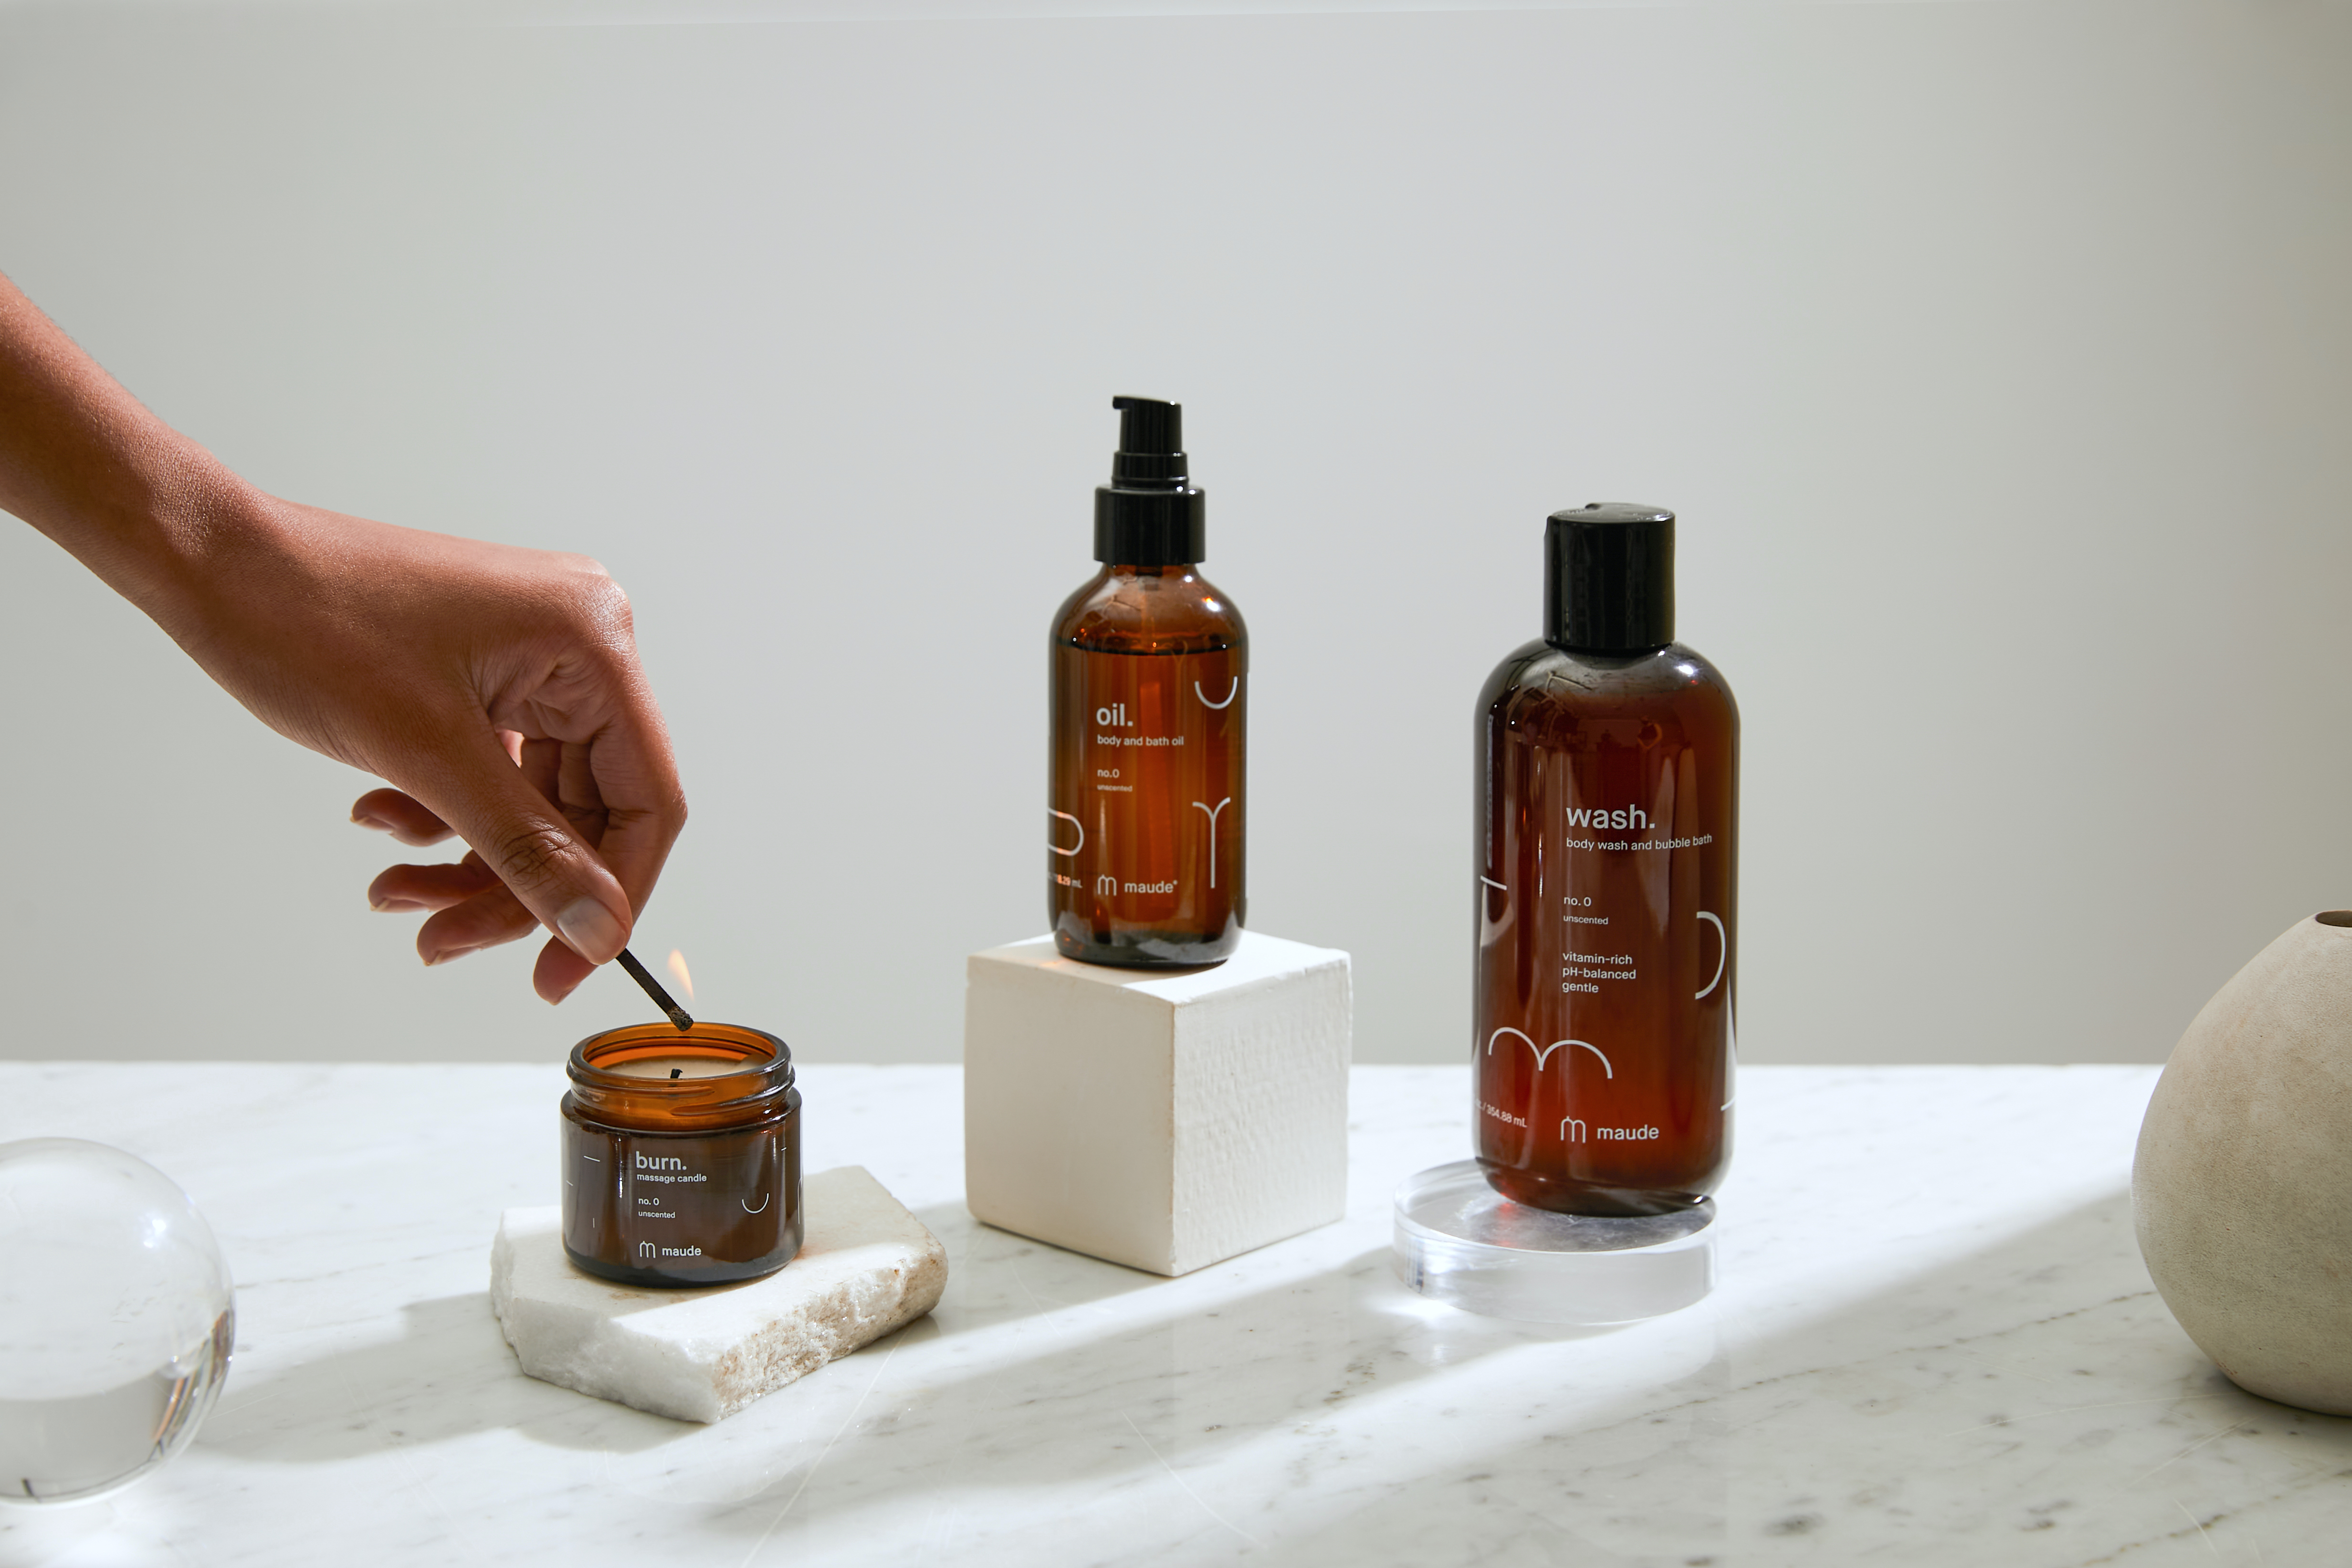 Maude products